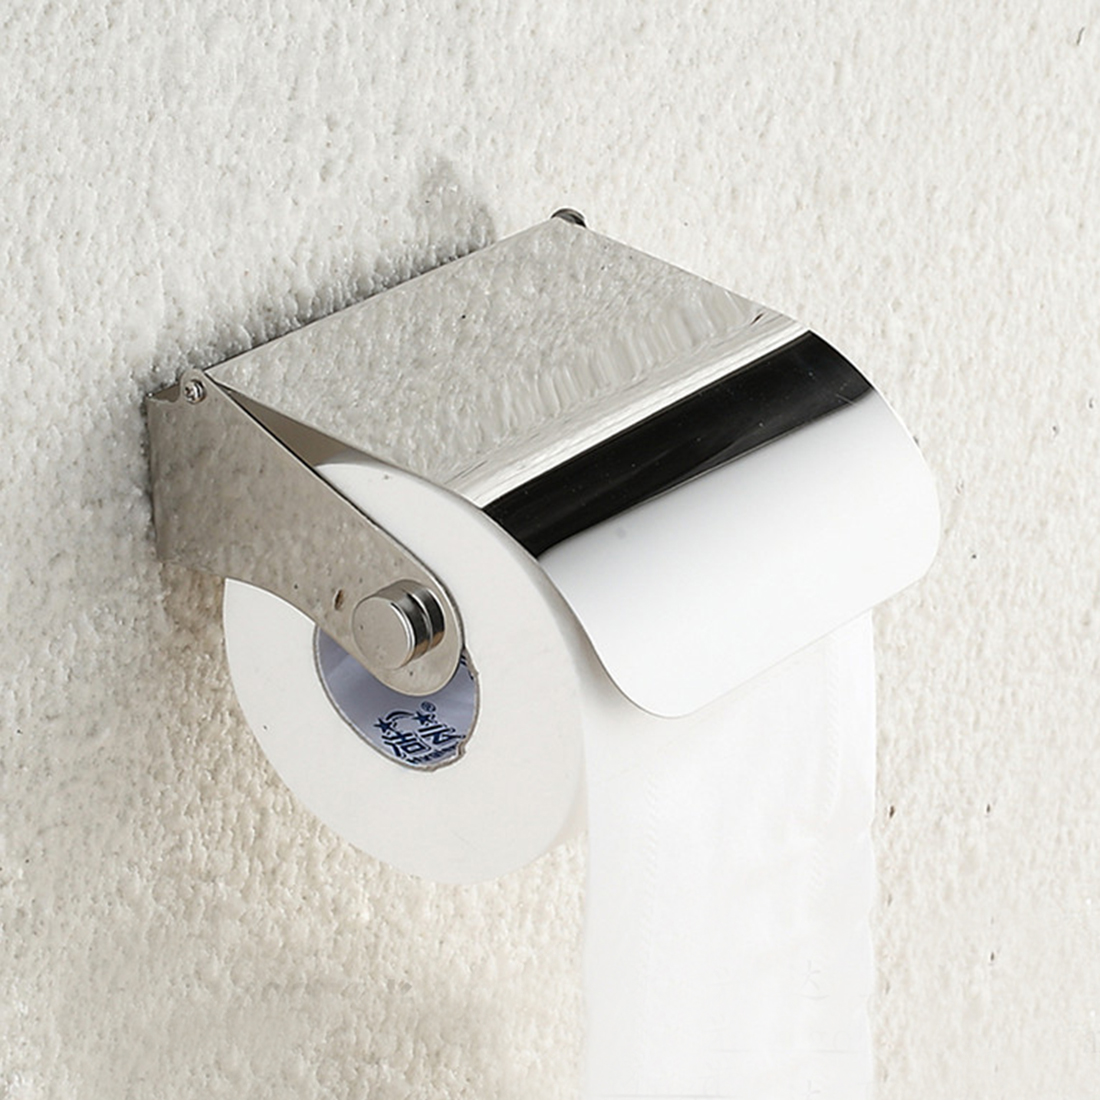 Wall Mounted Paper Roller popular mount paper-buy cheap mount paper lots from china mount